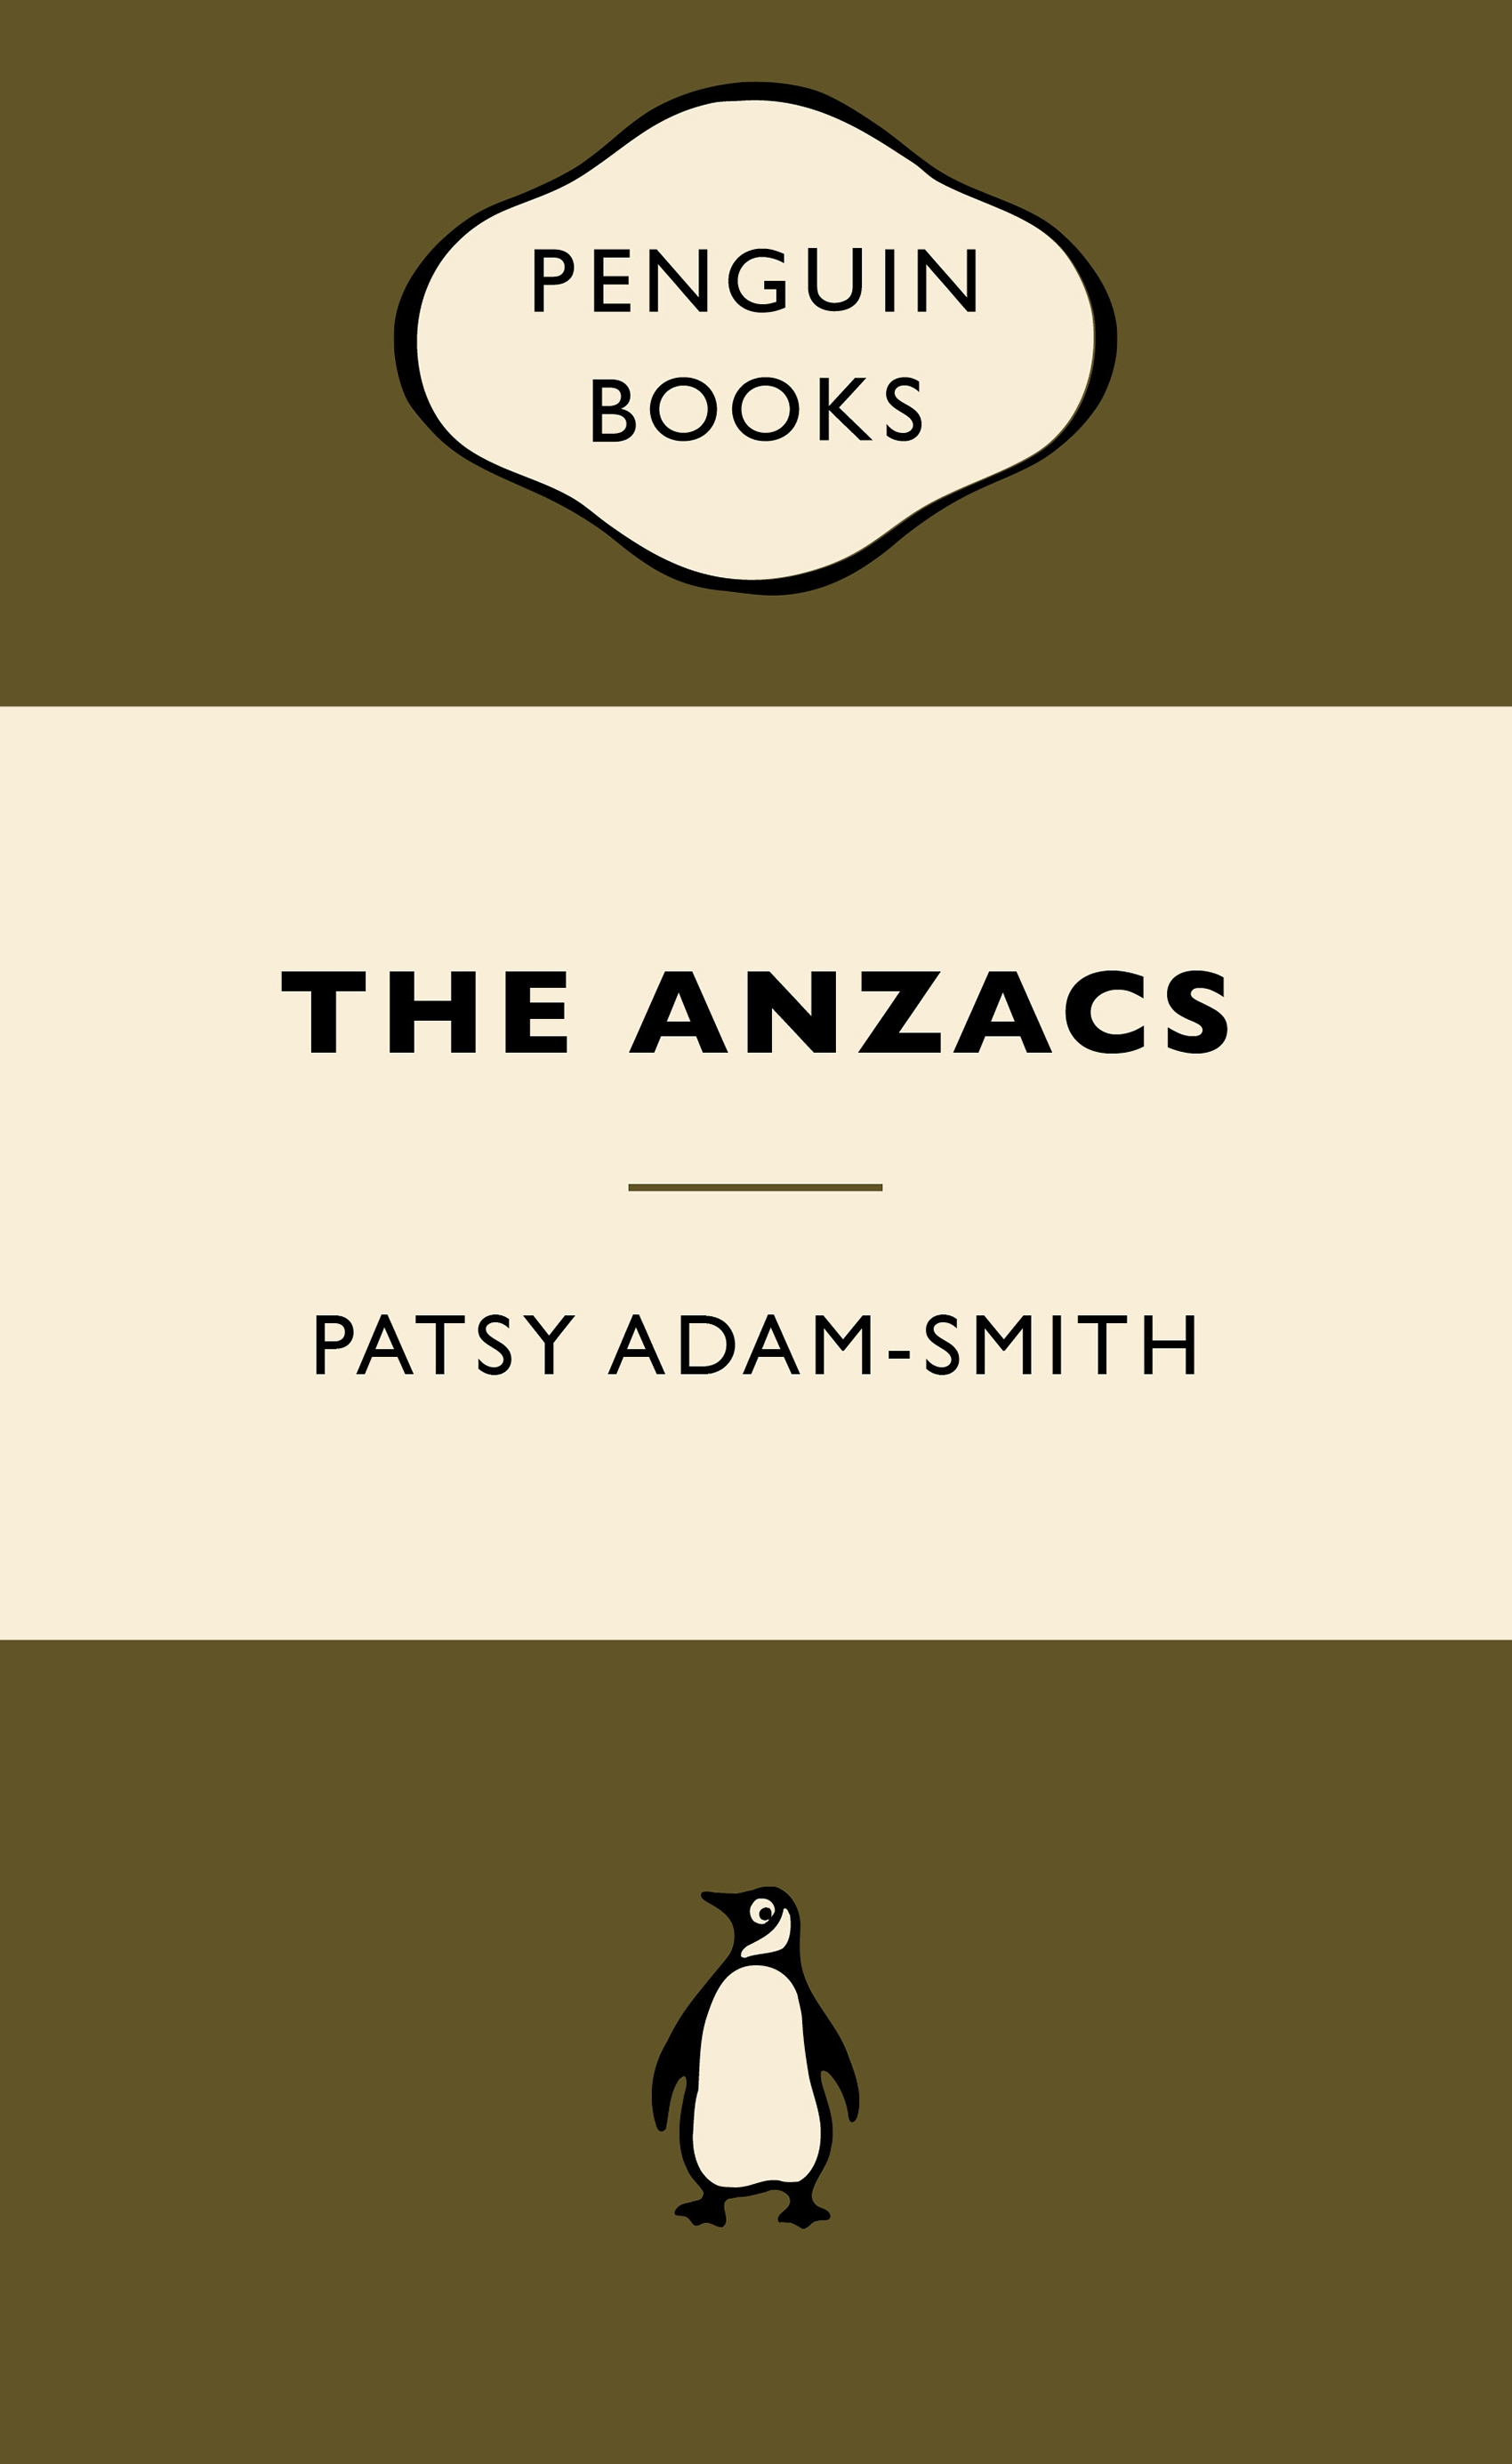 Original Penguin Book Covers : The anzacs war popular penguins by patsy adam smith